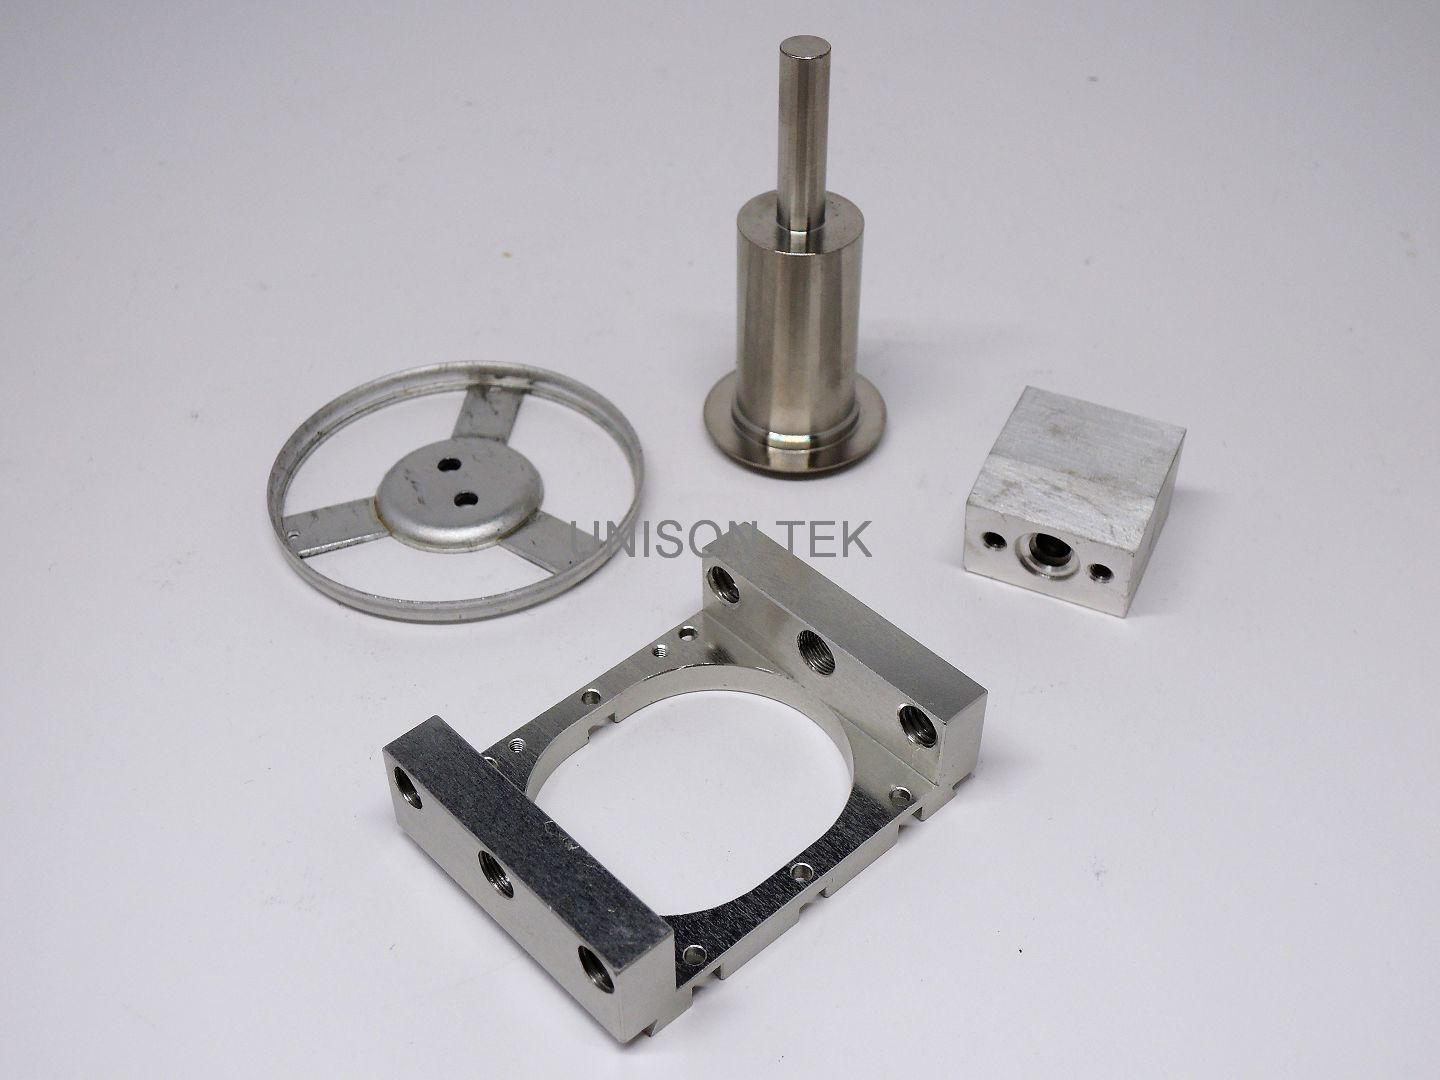 Unisontek CNC Precision Metal Parts